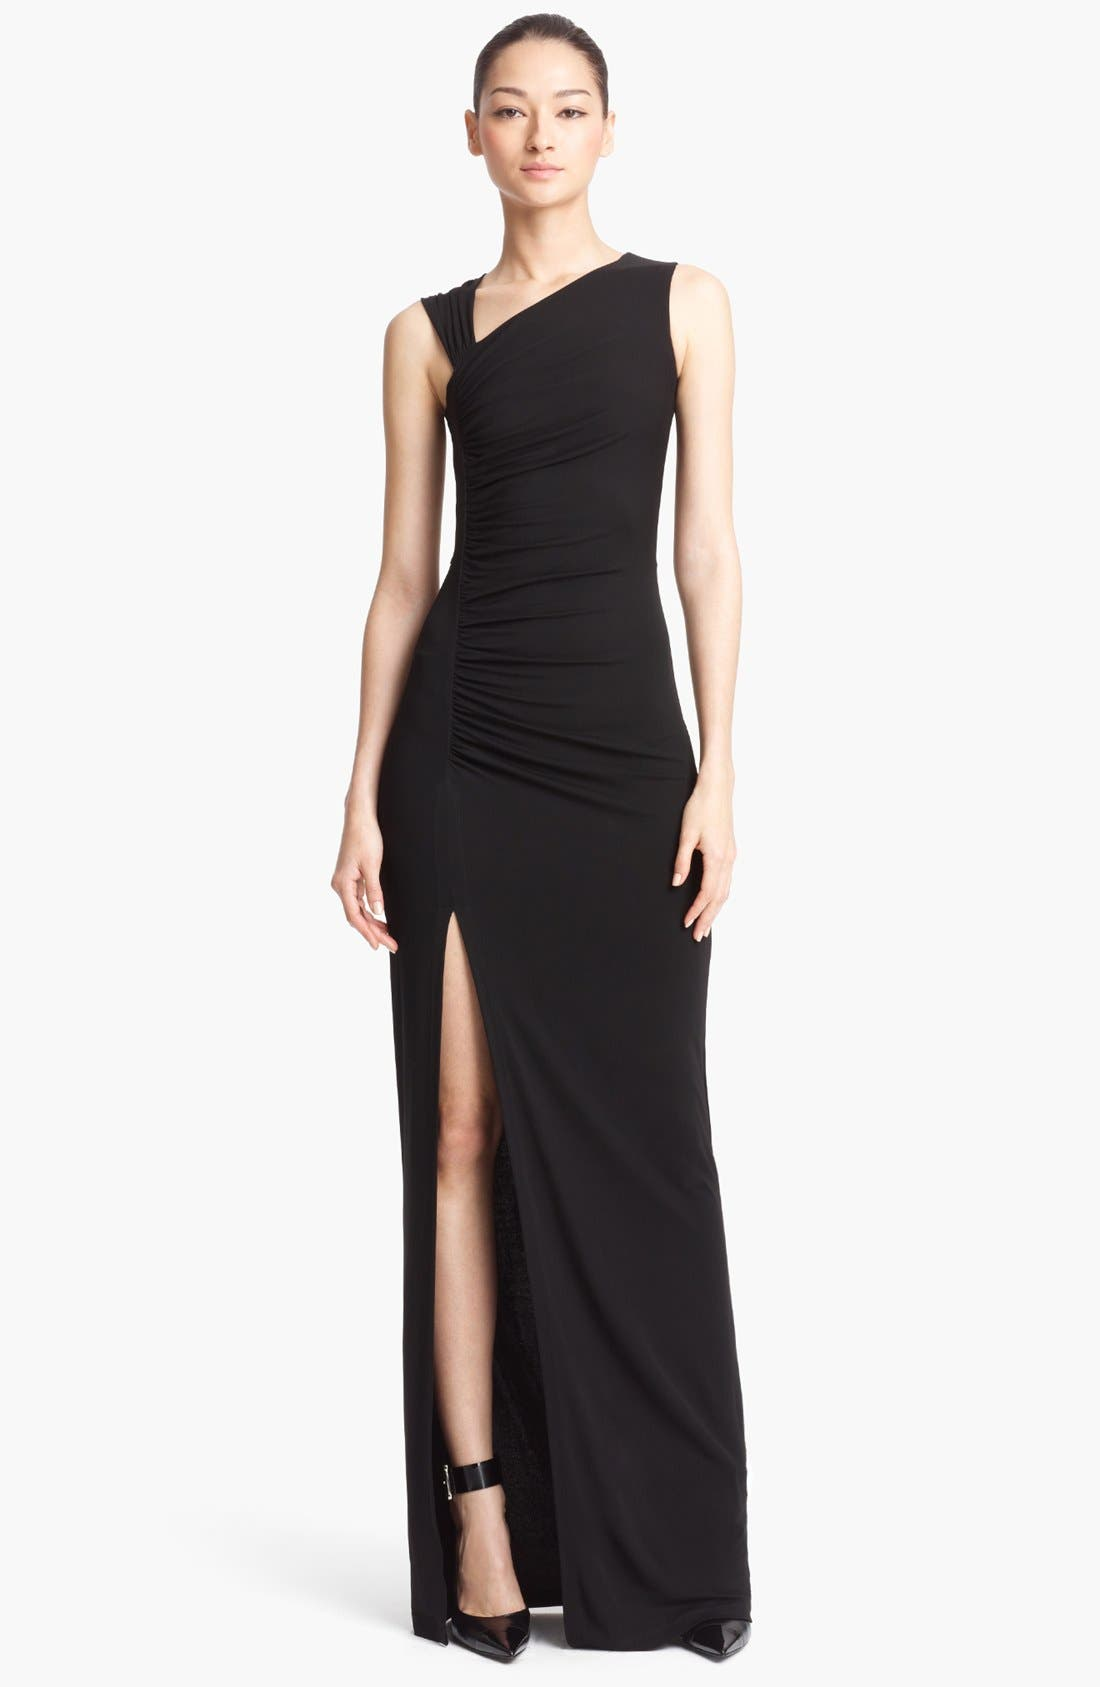 Alternate Image 1 Selected - Michael Kors Sleeveless Ruched Jersey Gown